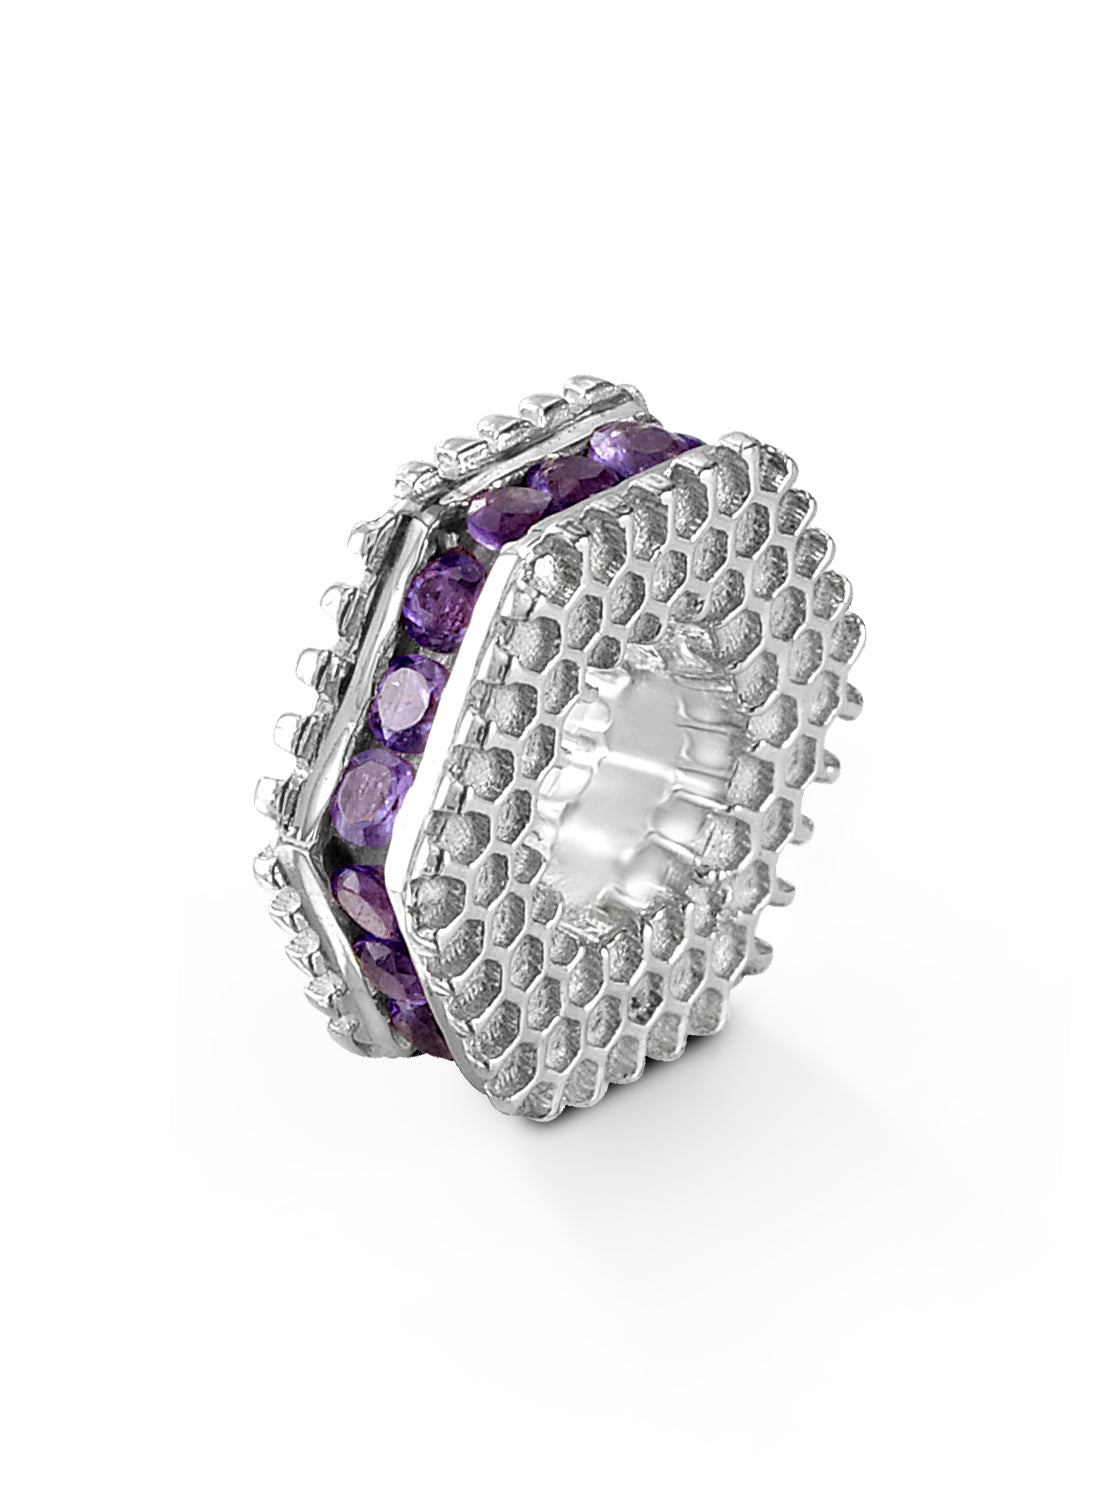 Bcouture February Mini Keepsake- Amethyst at Arman's Jewellers Kitchener